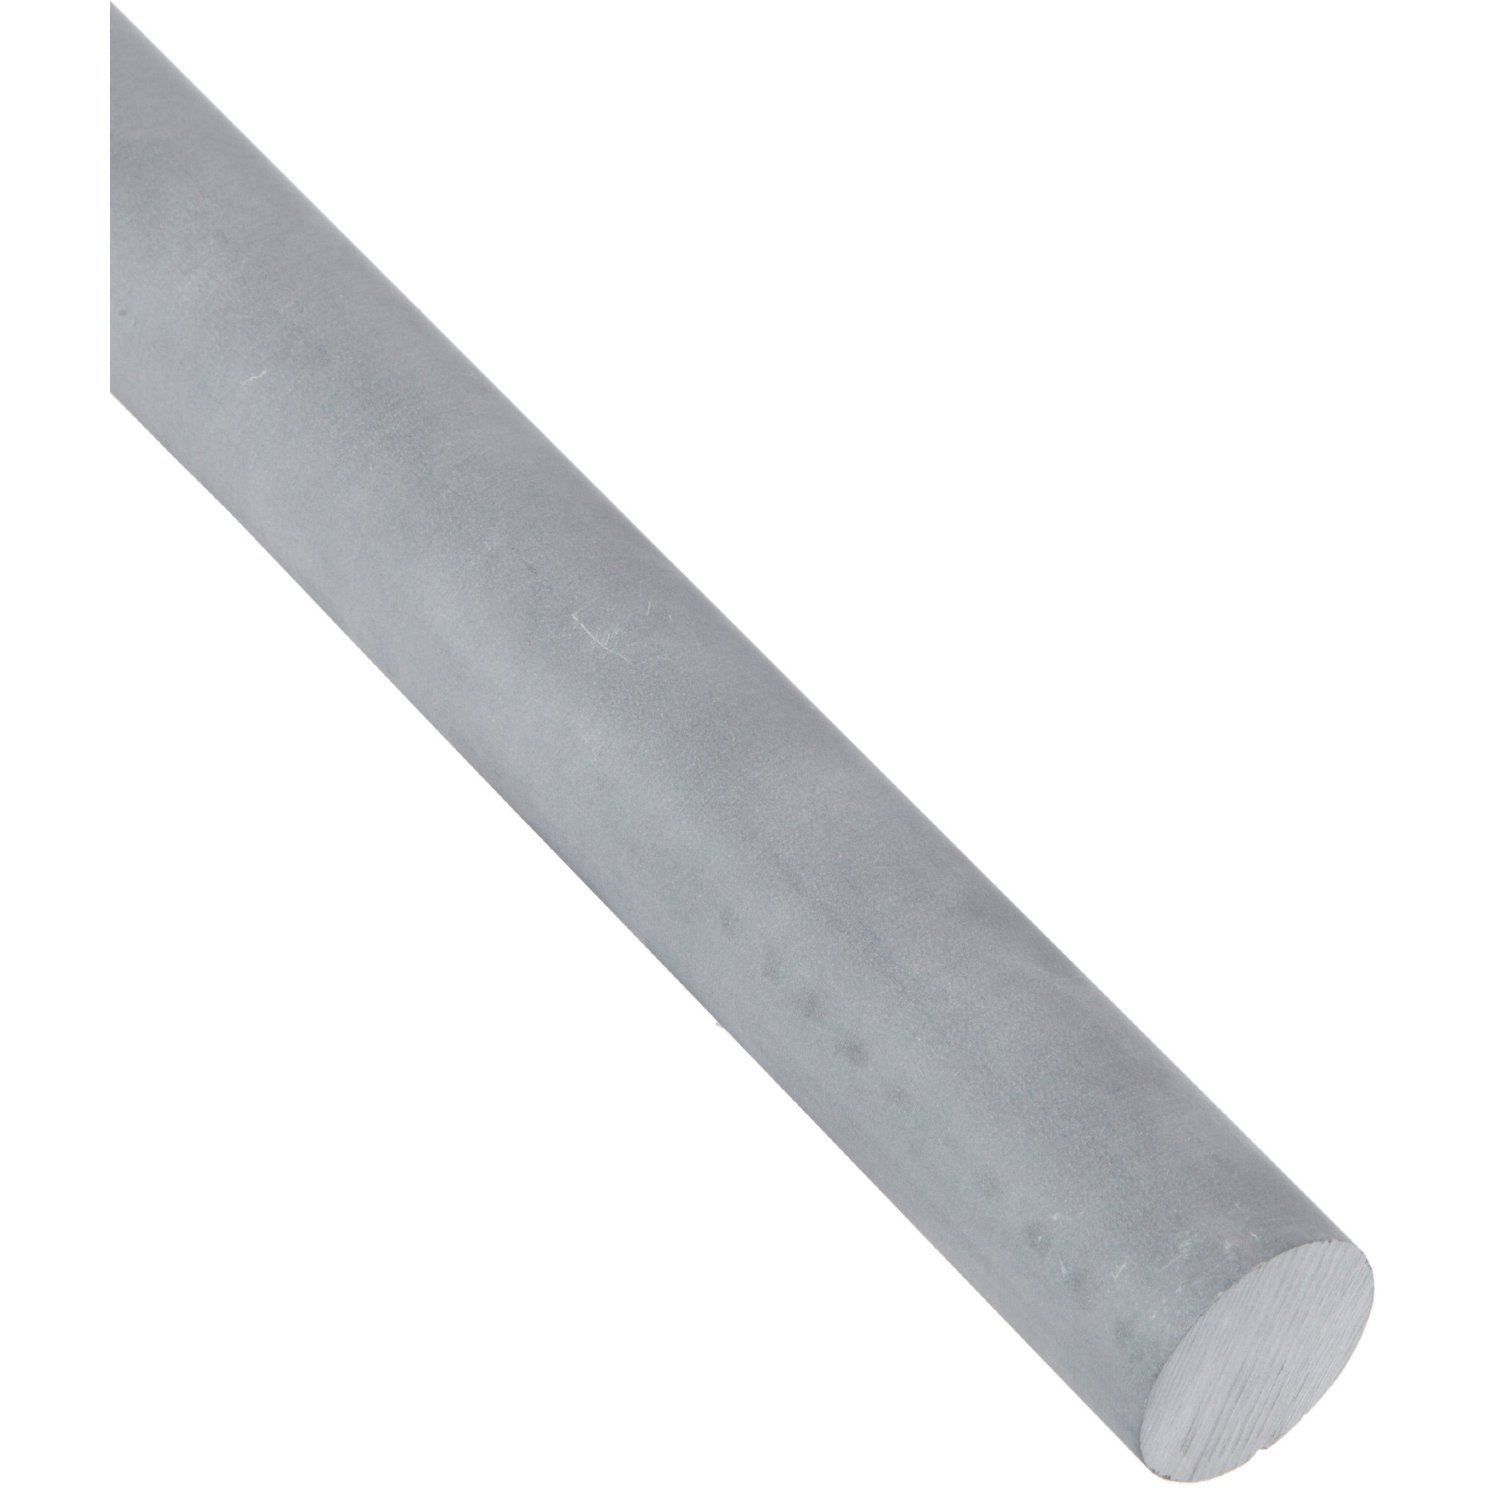 Lava, Alumina Silicate Ceramic, Rod, Opaque Gray, 1/8' Diameter, 9' Length